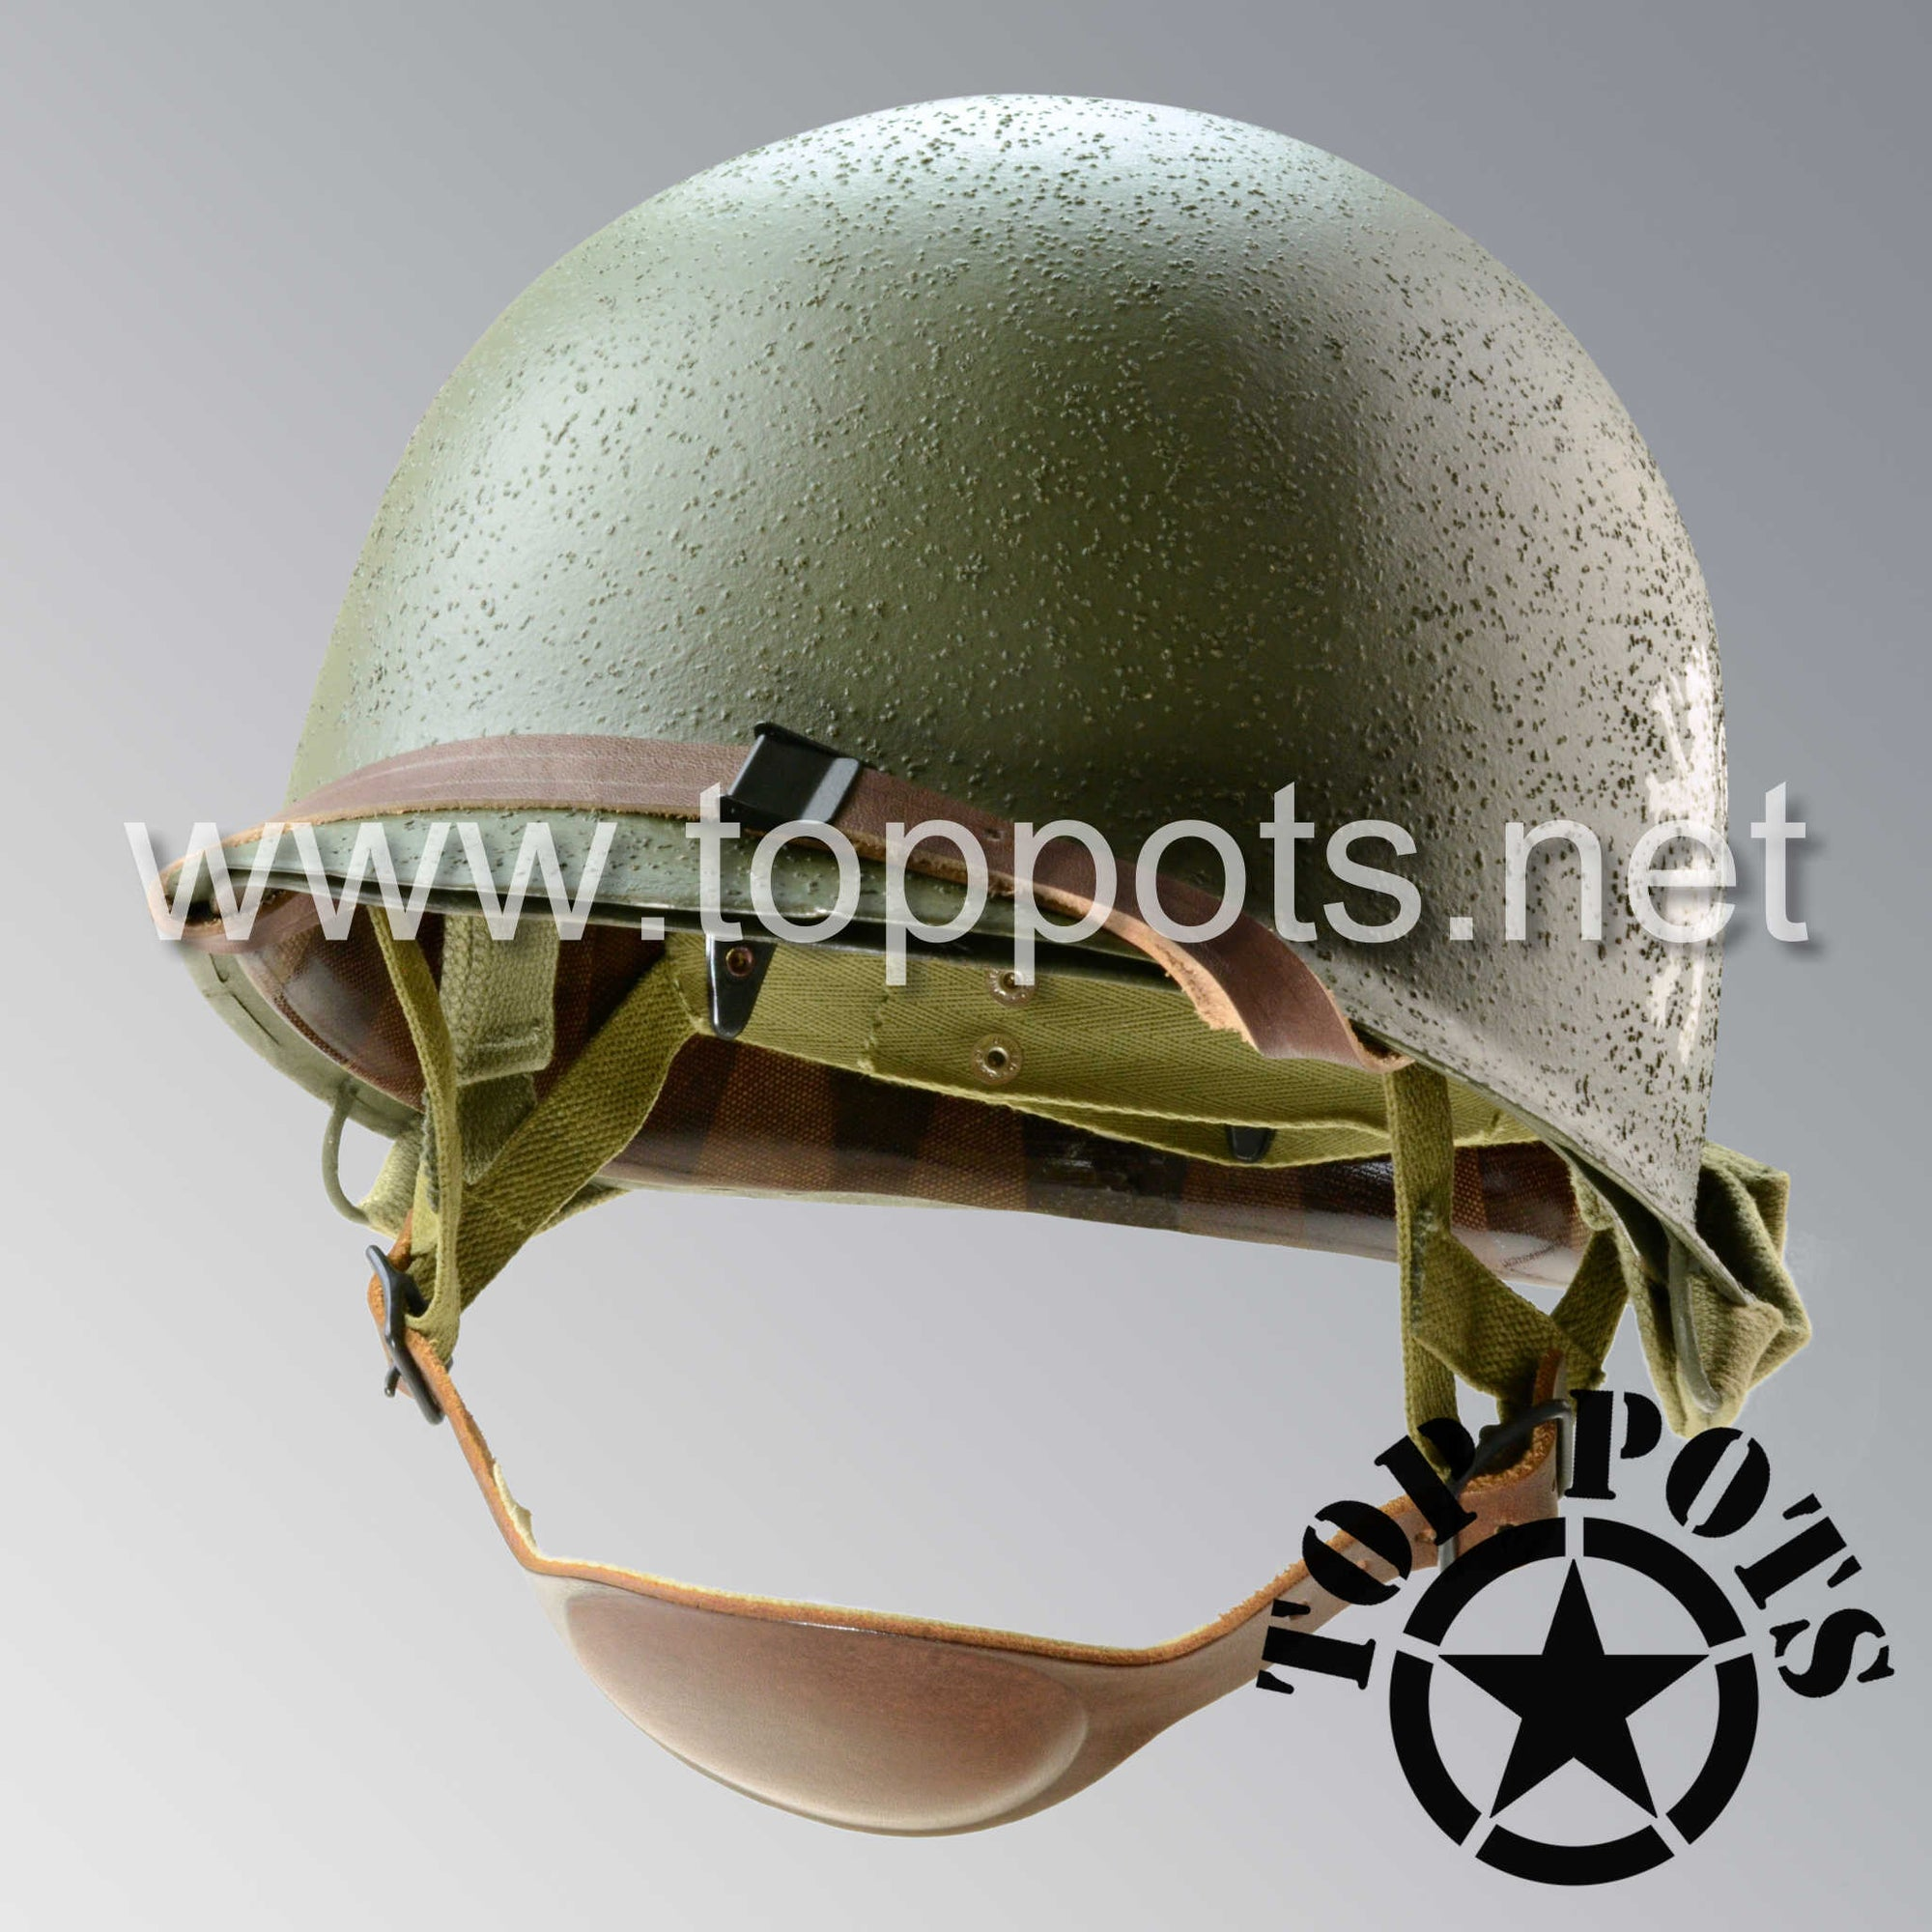 Image 1 of WWII US Army Restored Original M2 Paratrooper Airborne Helmet D Bale Shell and Liner with 505th PIR NCO Emblem